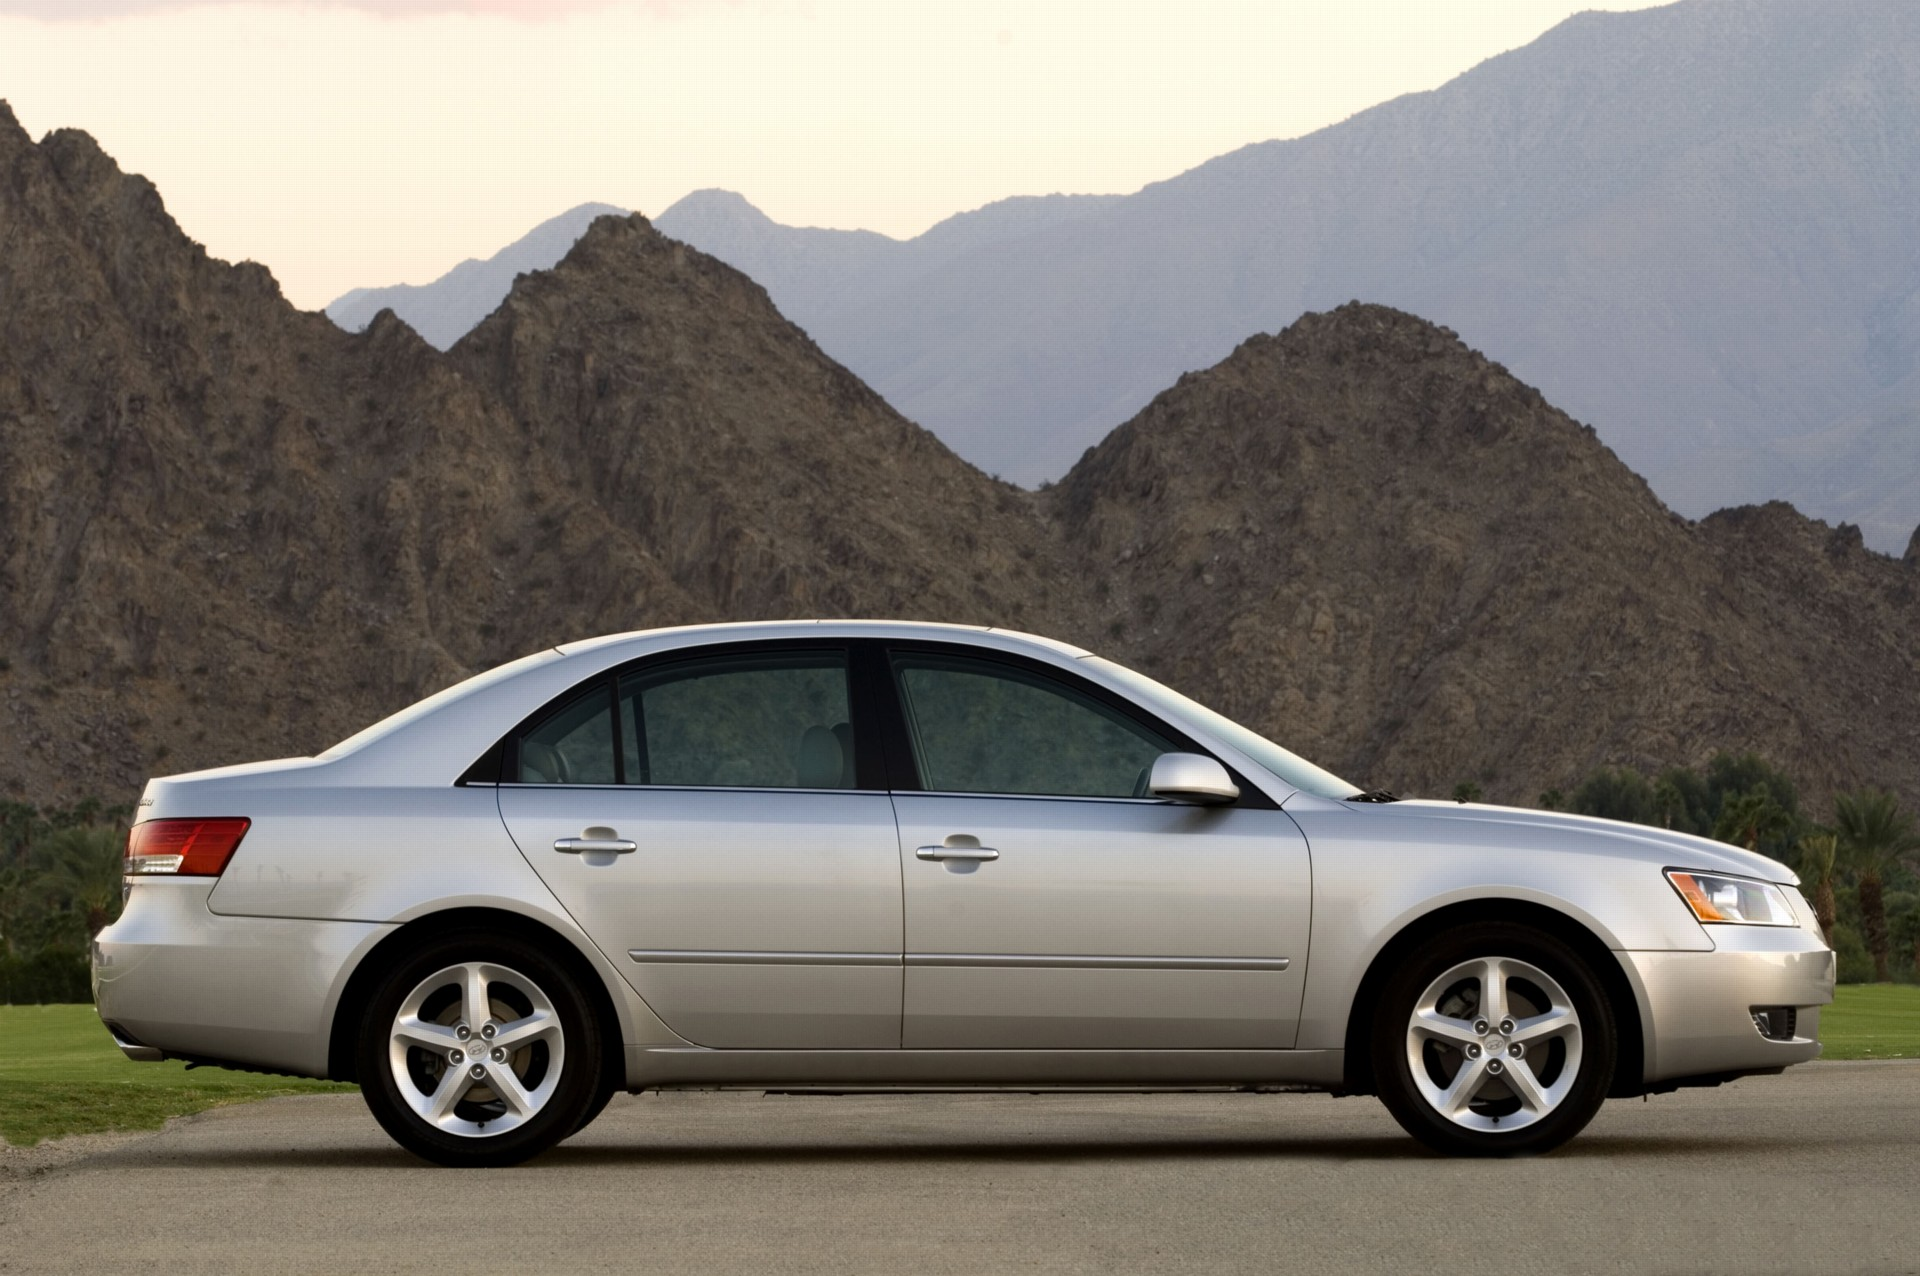 2007 Hyundai Sonata Pictures History Value Research